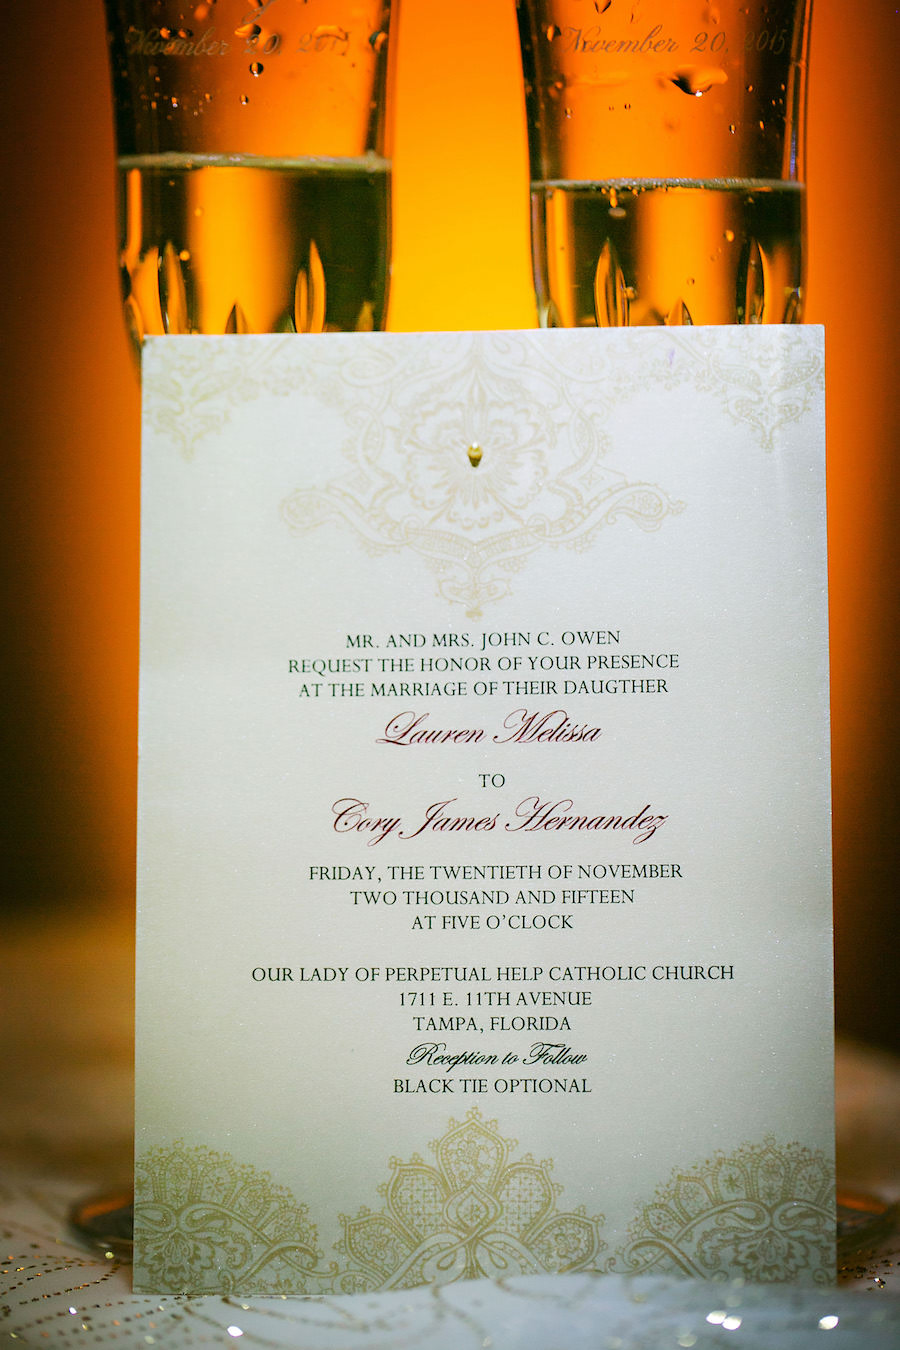 Ivory and Gold Wedding Invitation Stationary Suite with Callligraphy and Embossed Detail Header and Footer